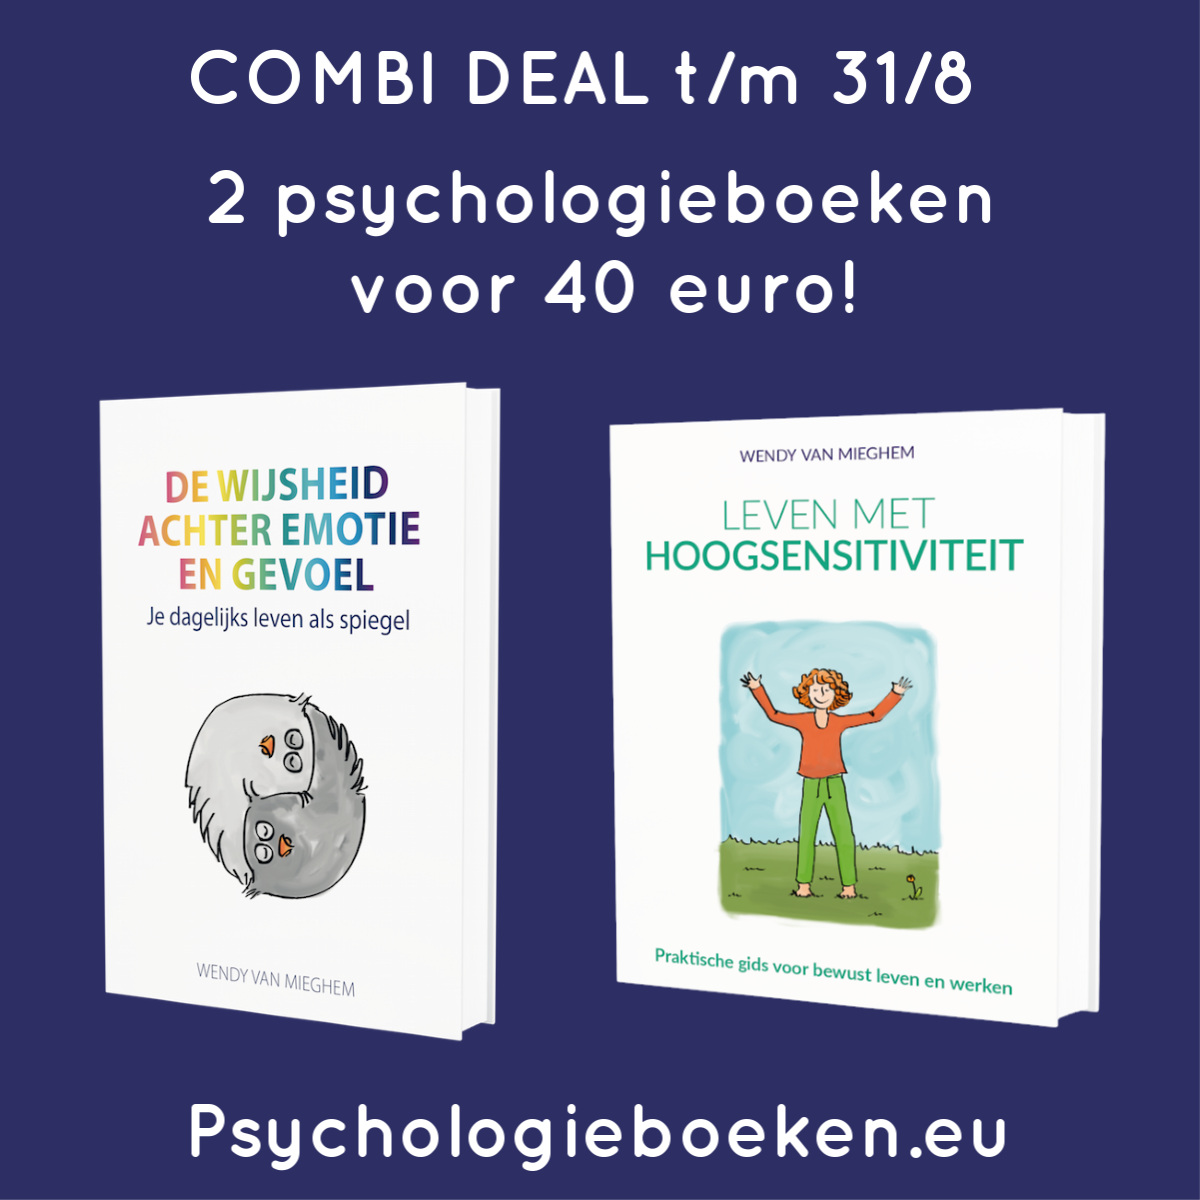 Combi deal - Psychologieboeken.eu